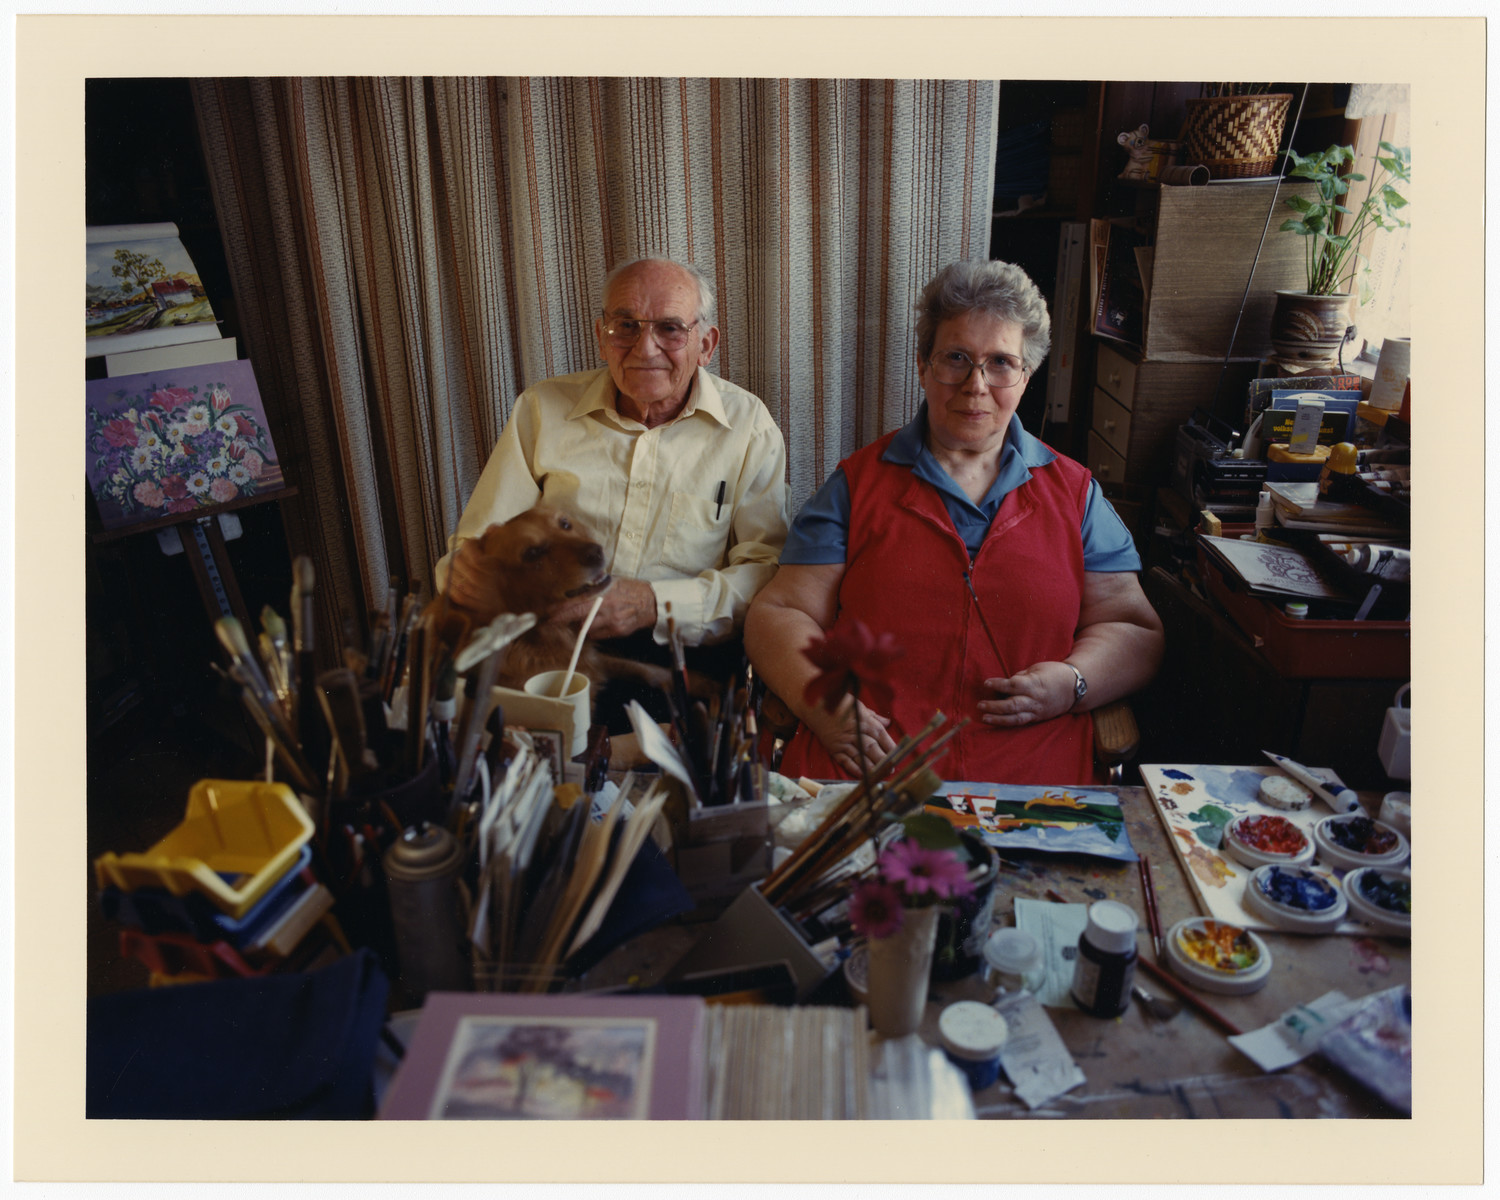 A portrait of Bert (Lizebertus) and Betty Bochove, taken in Lomita California. Bert Bochove was Netherland Holocaust rescuer during the war.